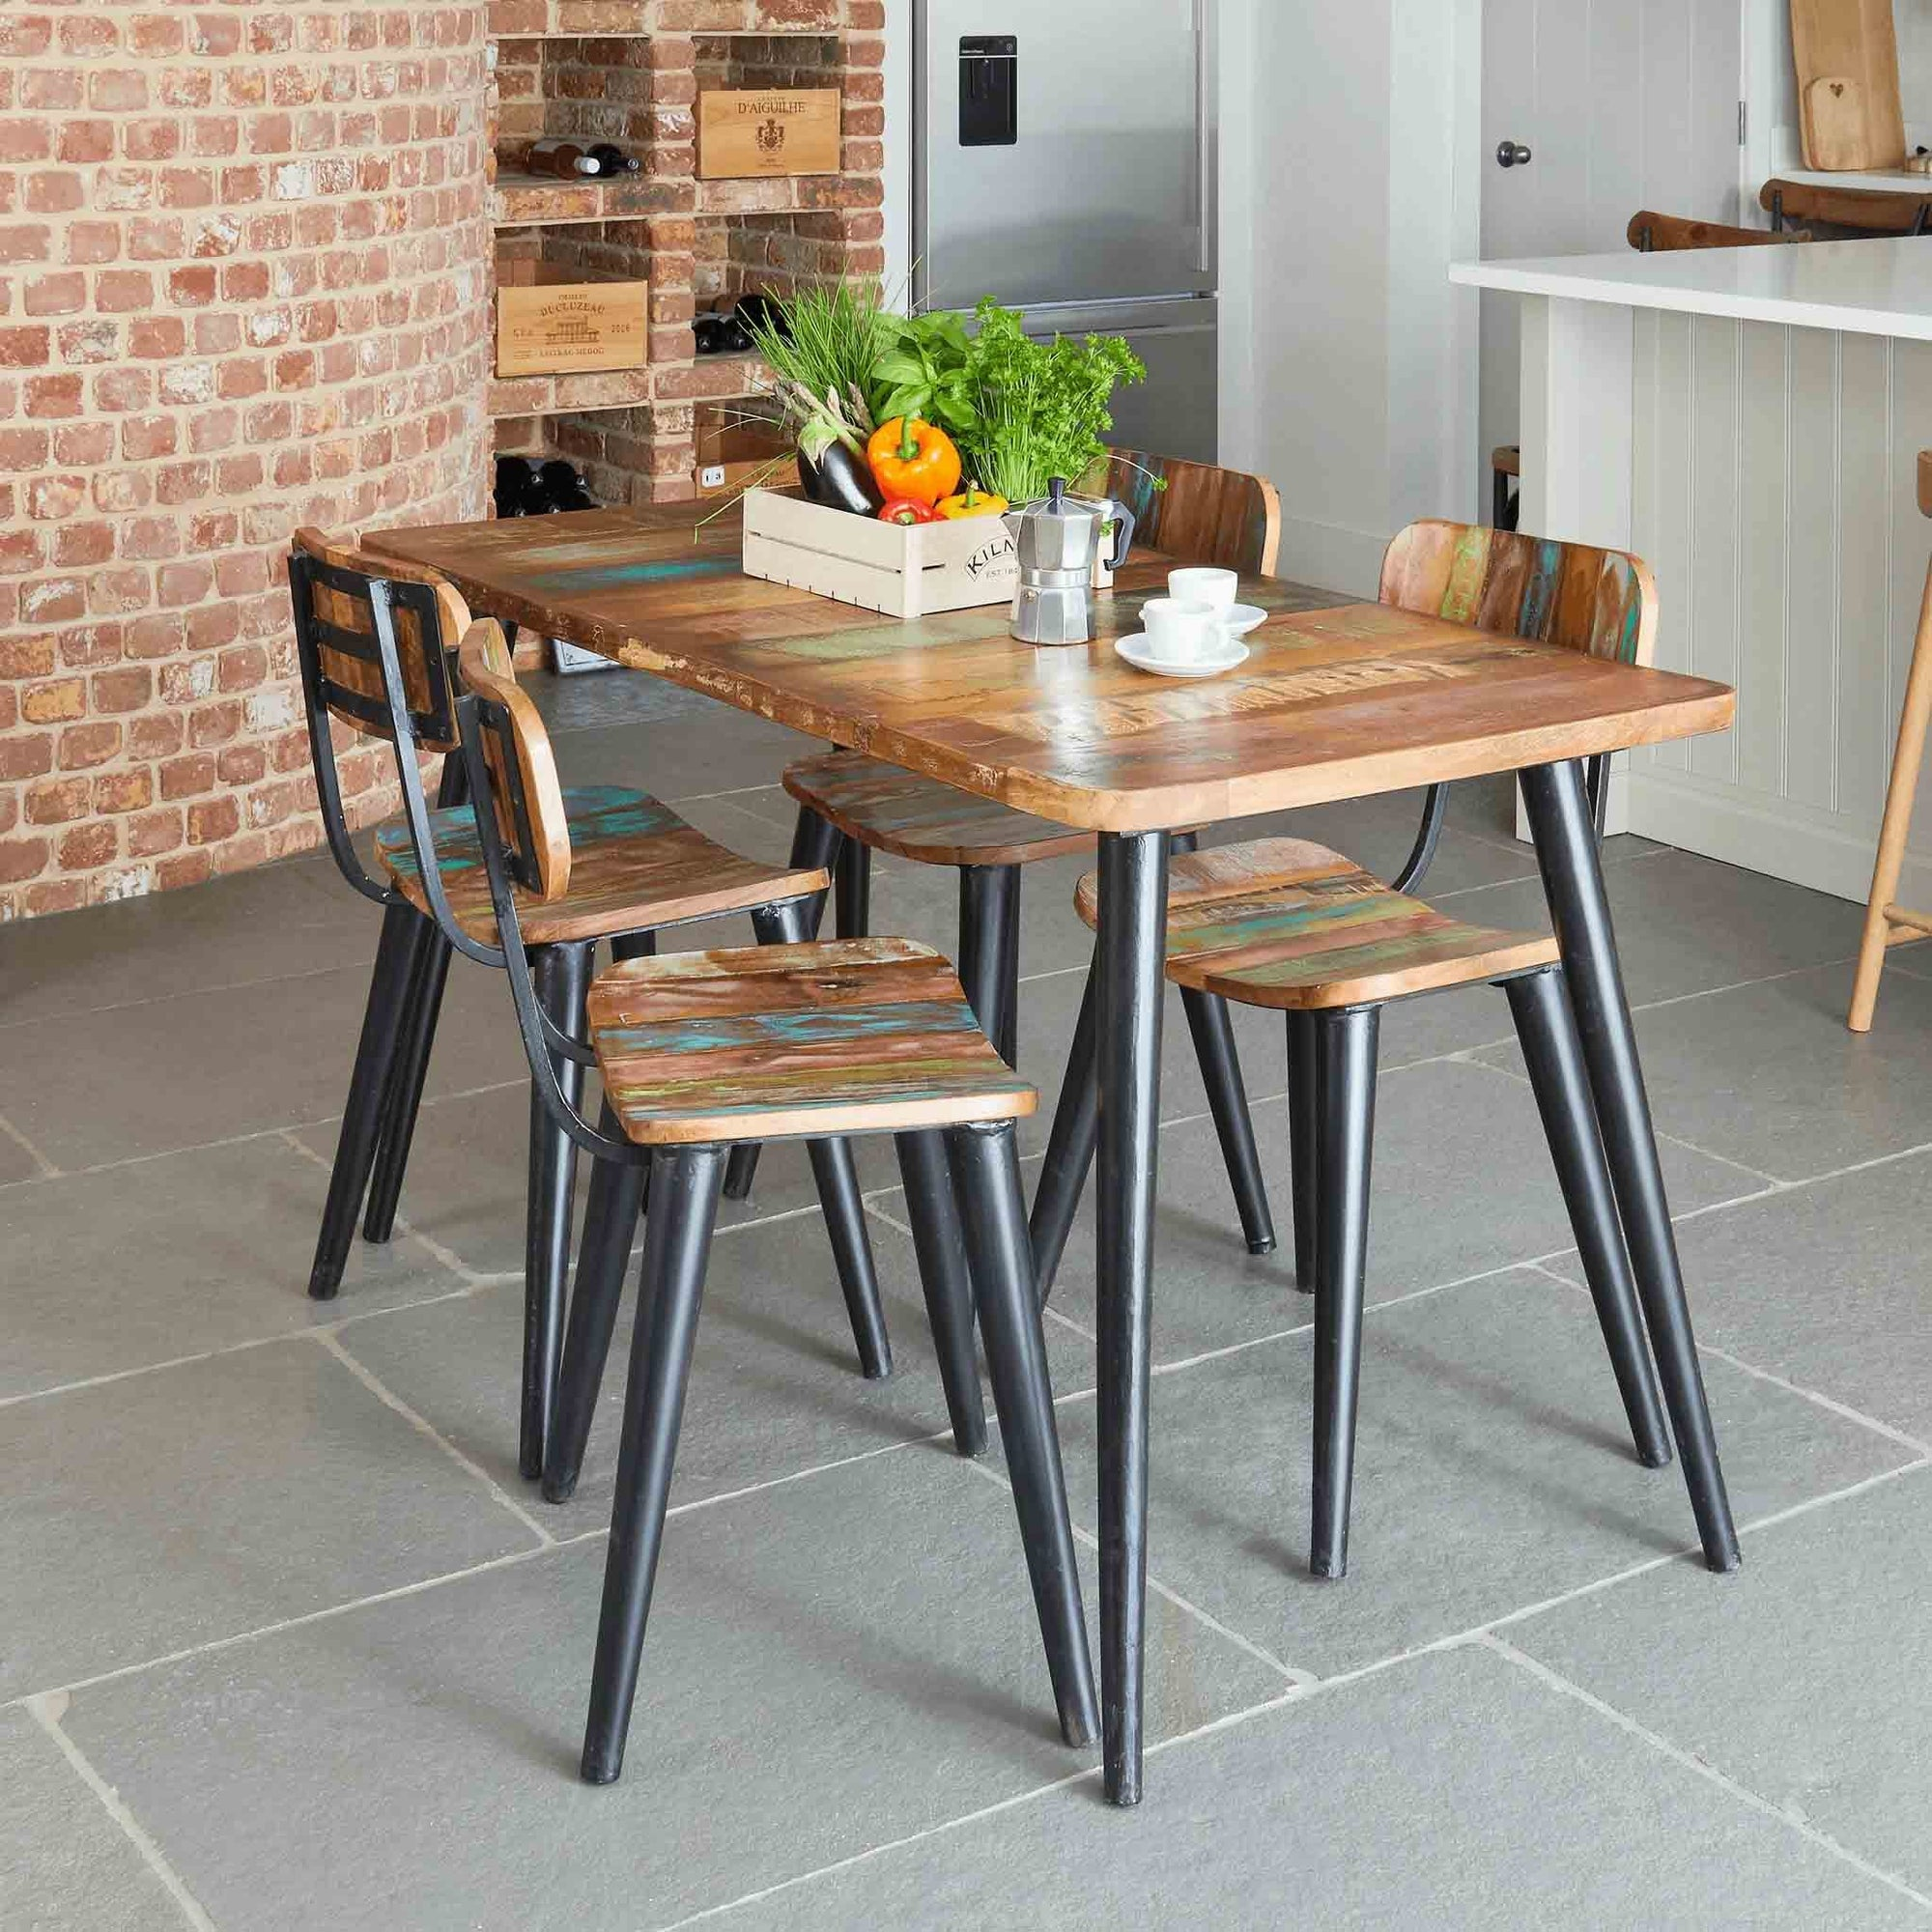 Coastal Chic 140cm Dining Table by Roseland Furniture